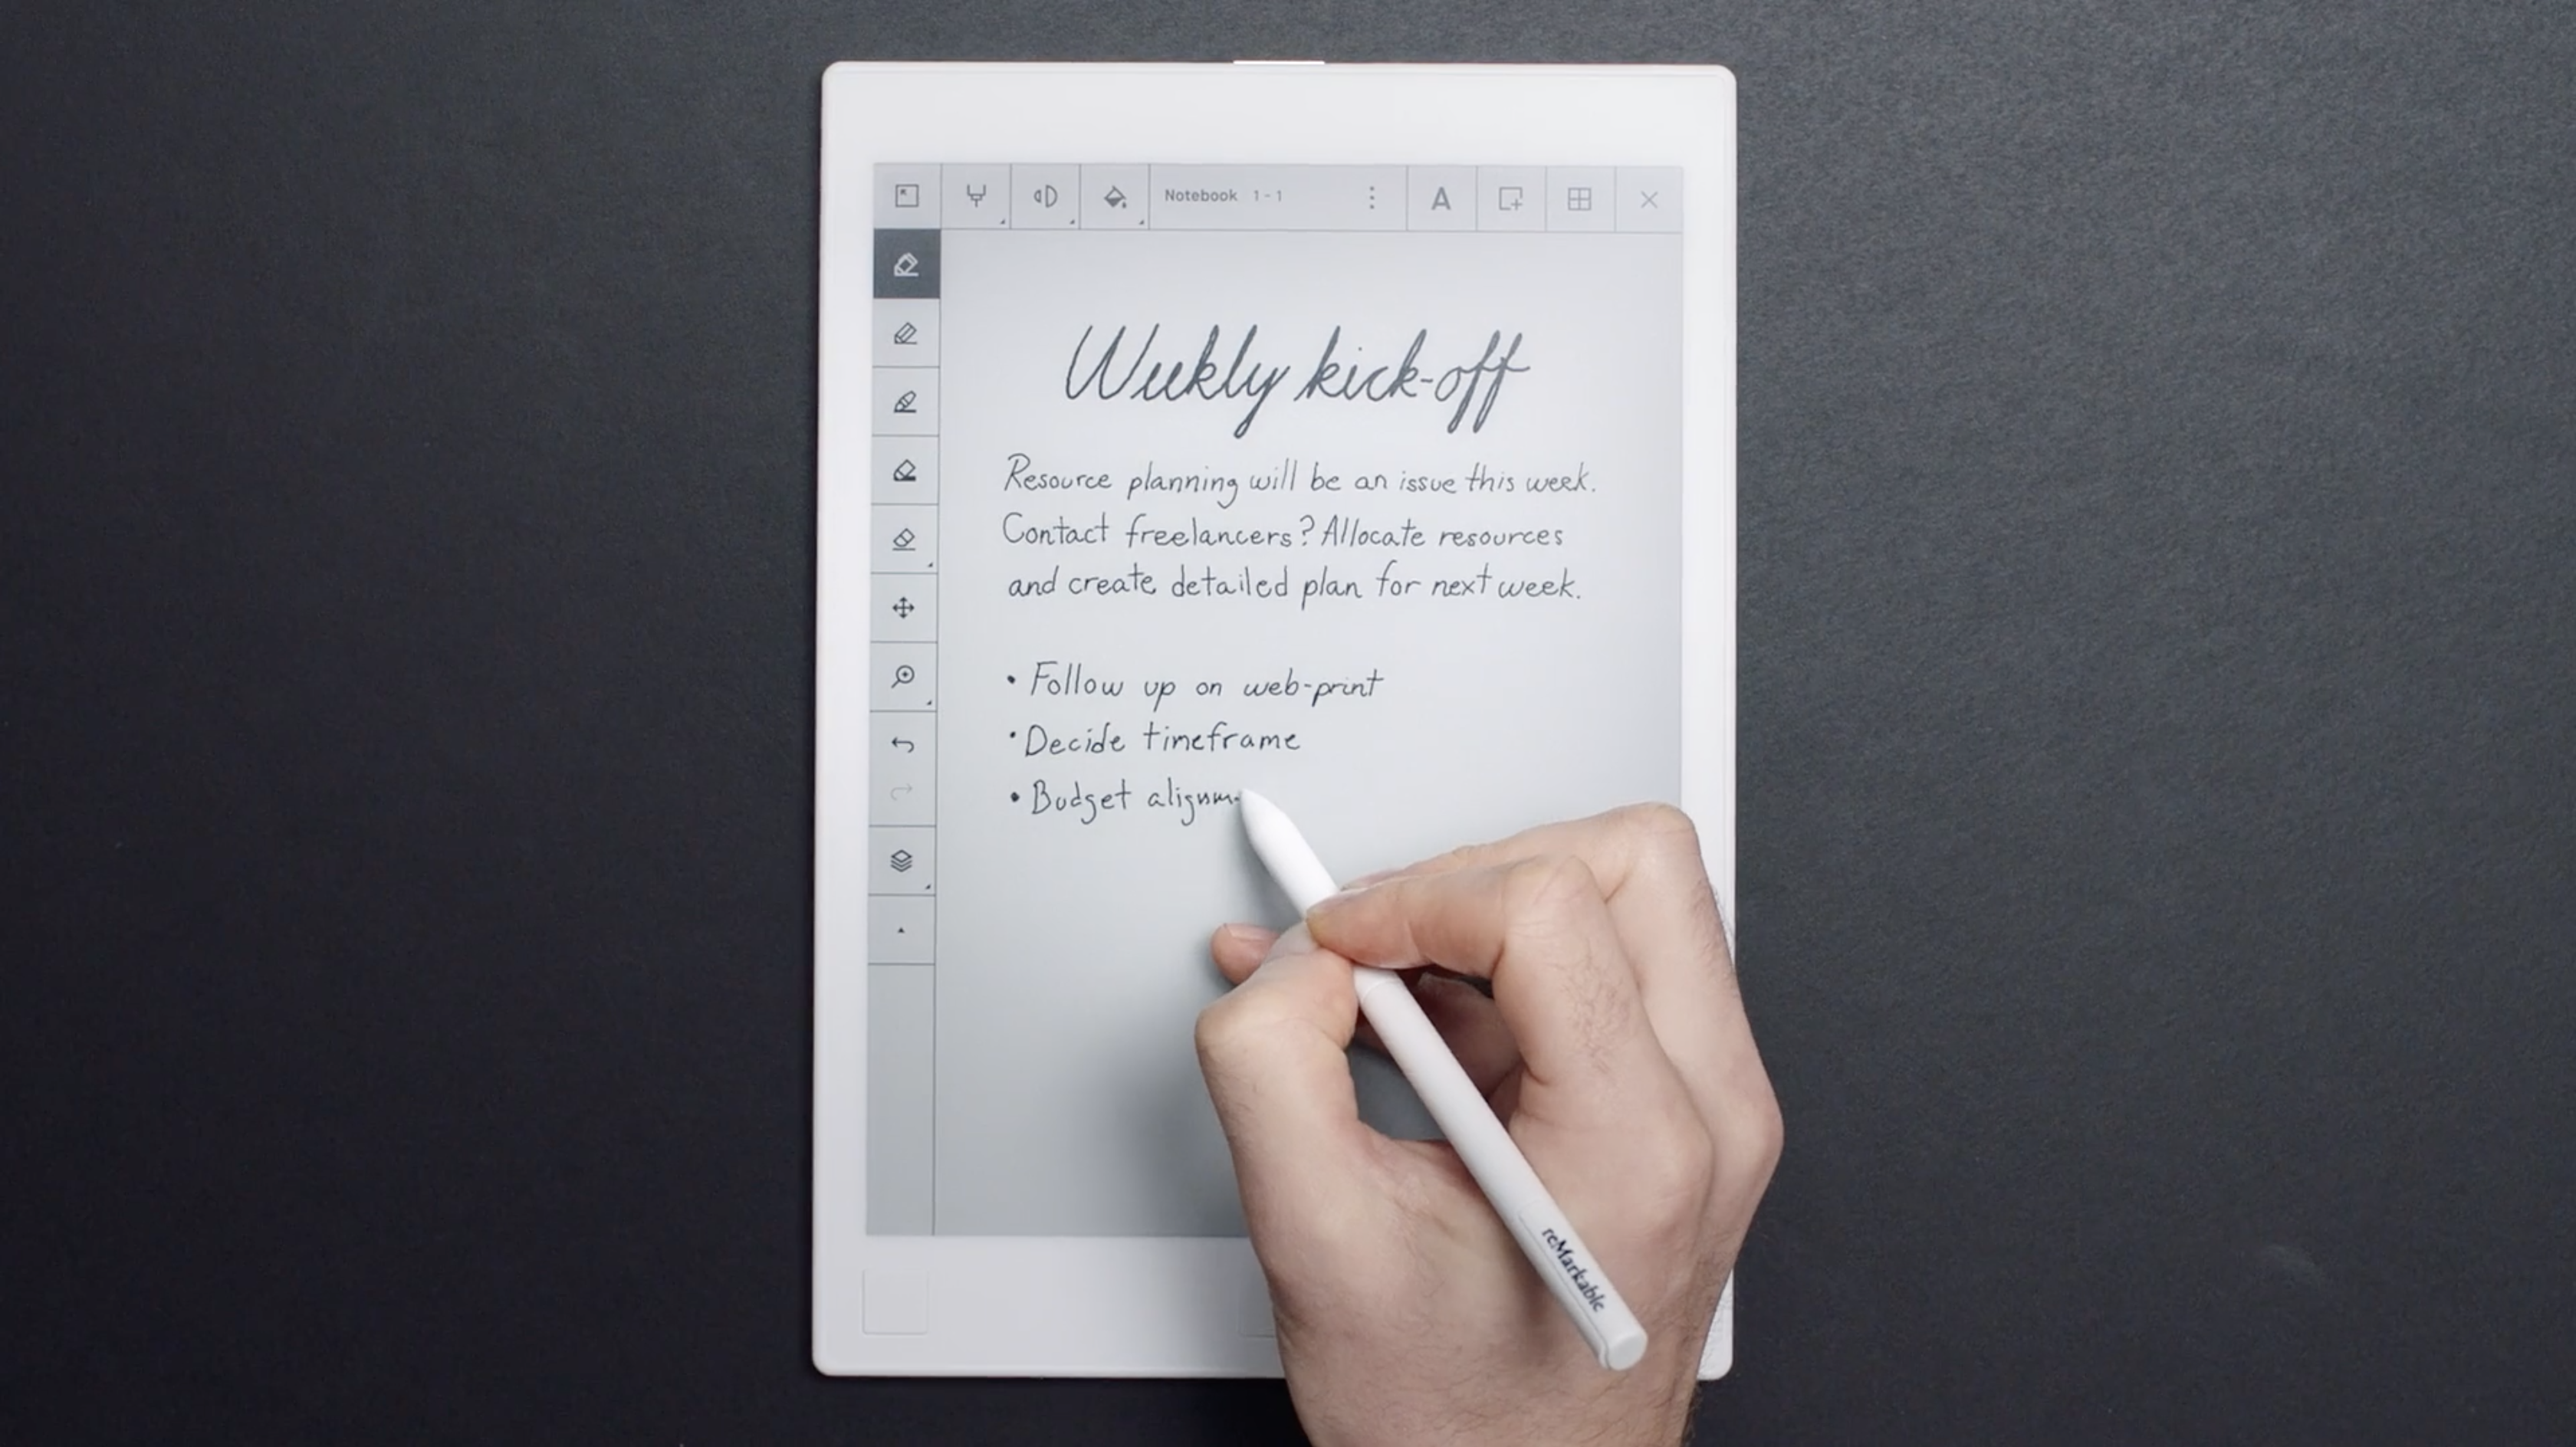 How to get the most out of reMarkable's new handwriting